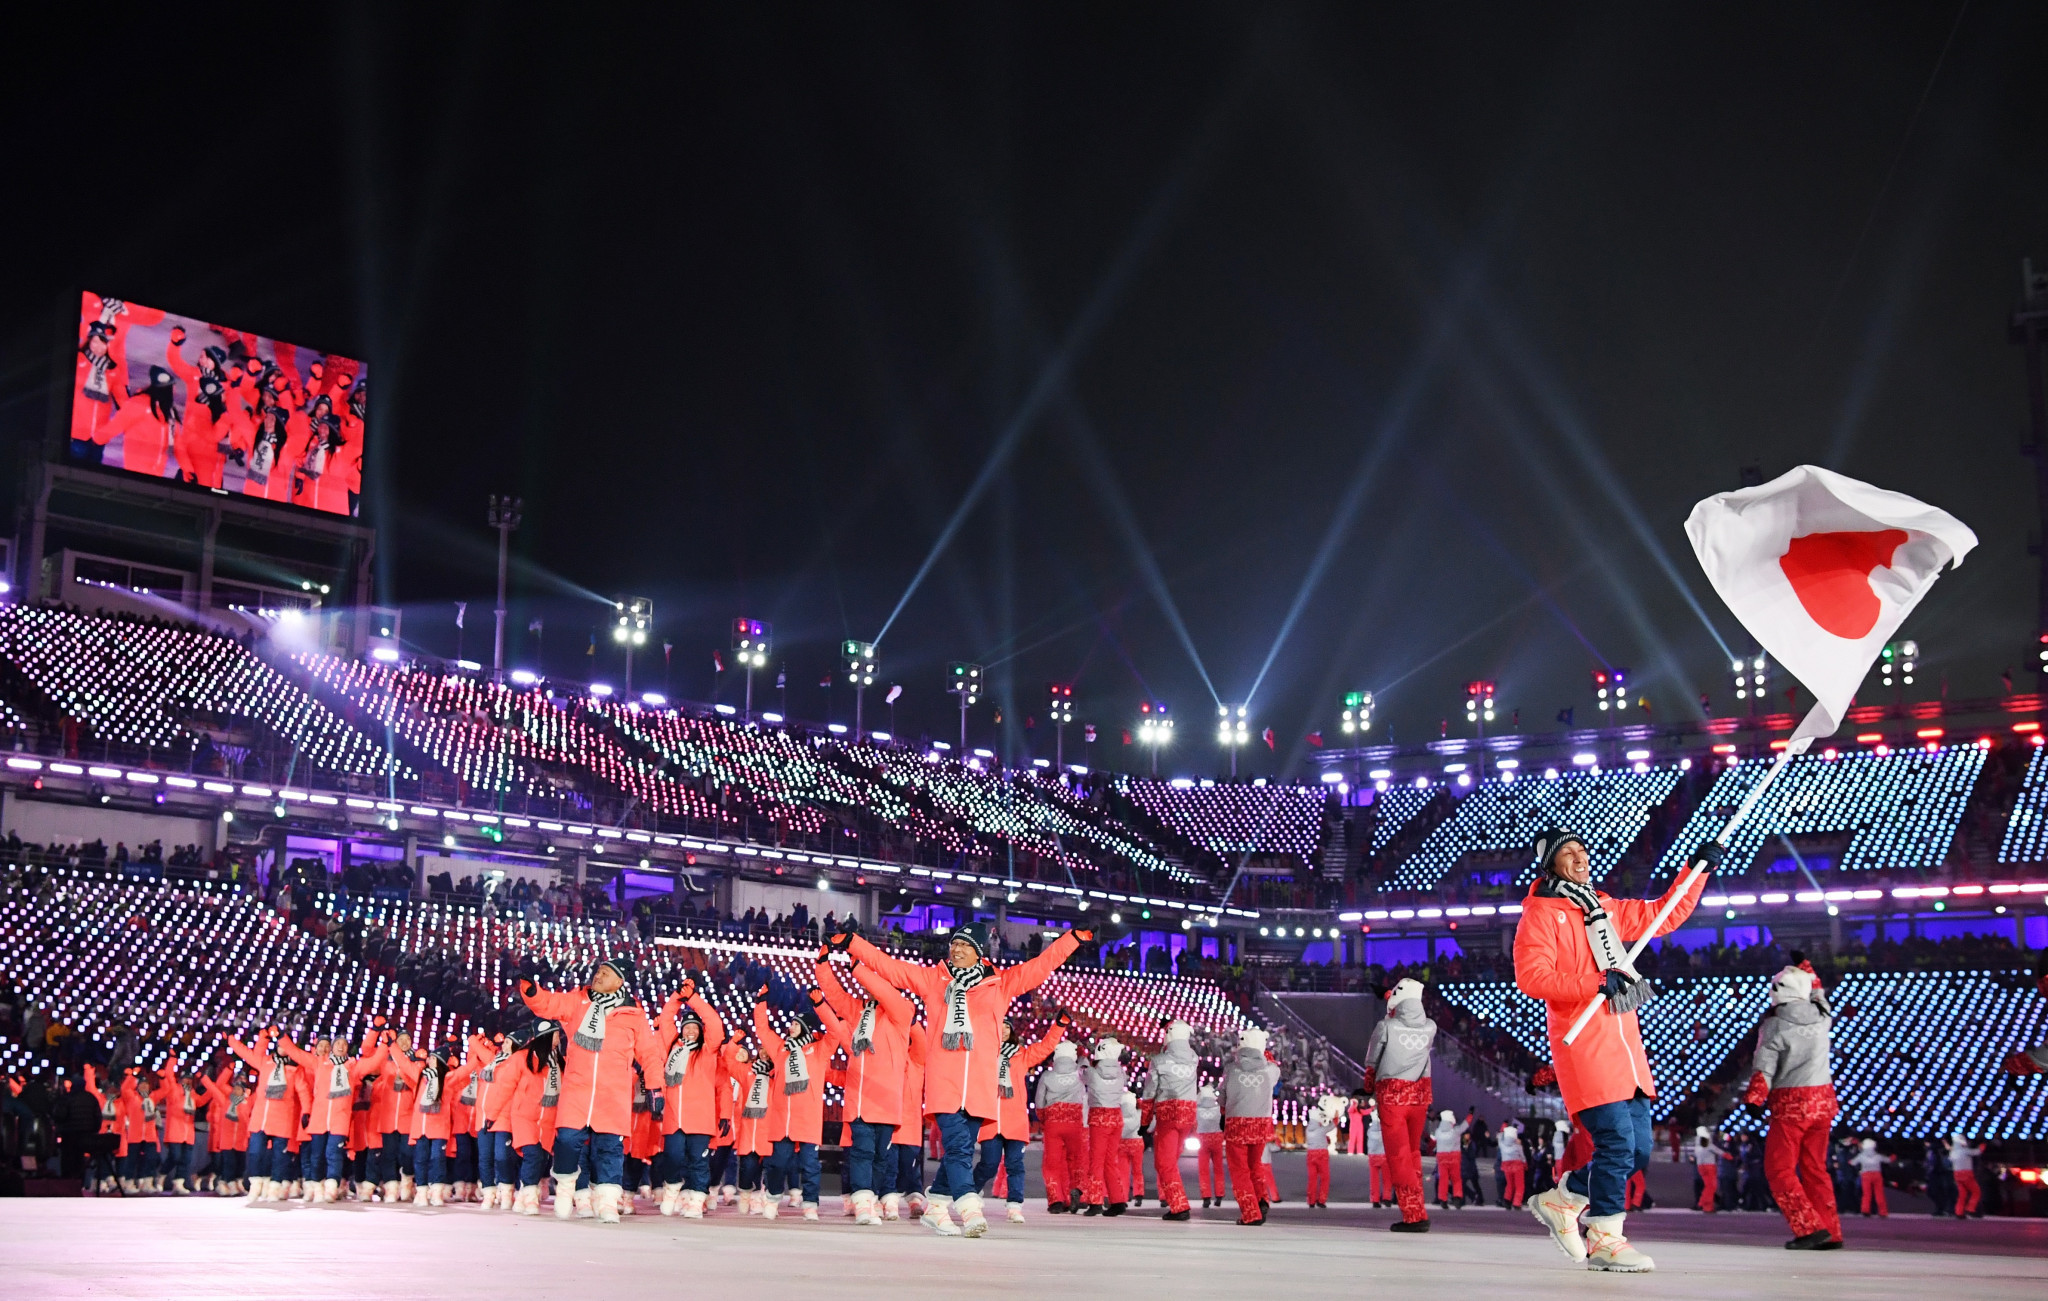 Josh Cooper Ramo made the remarks as Japan was introduced at the Opening Ceremony ©Getty Images